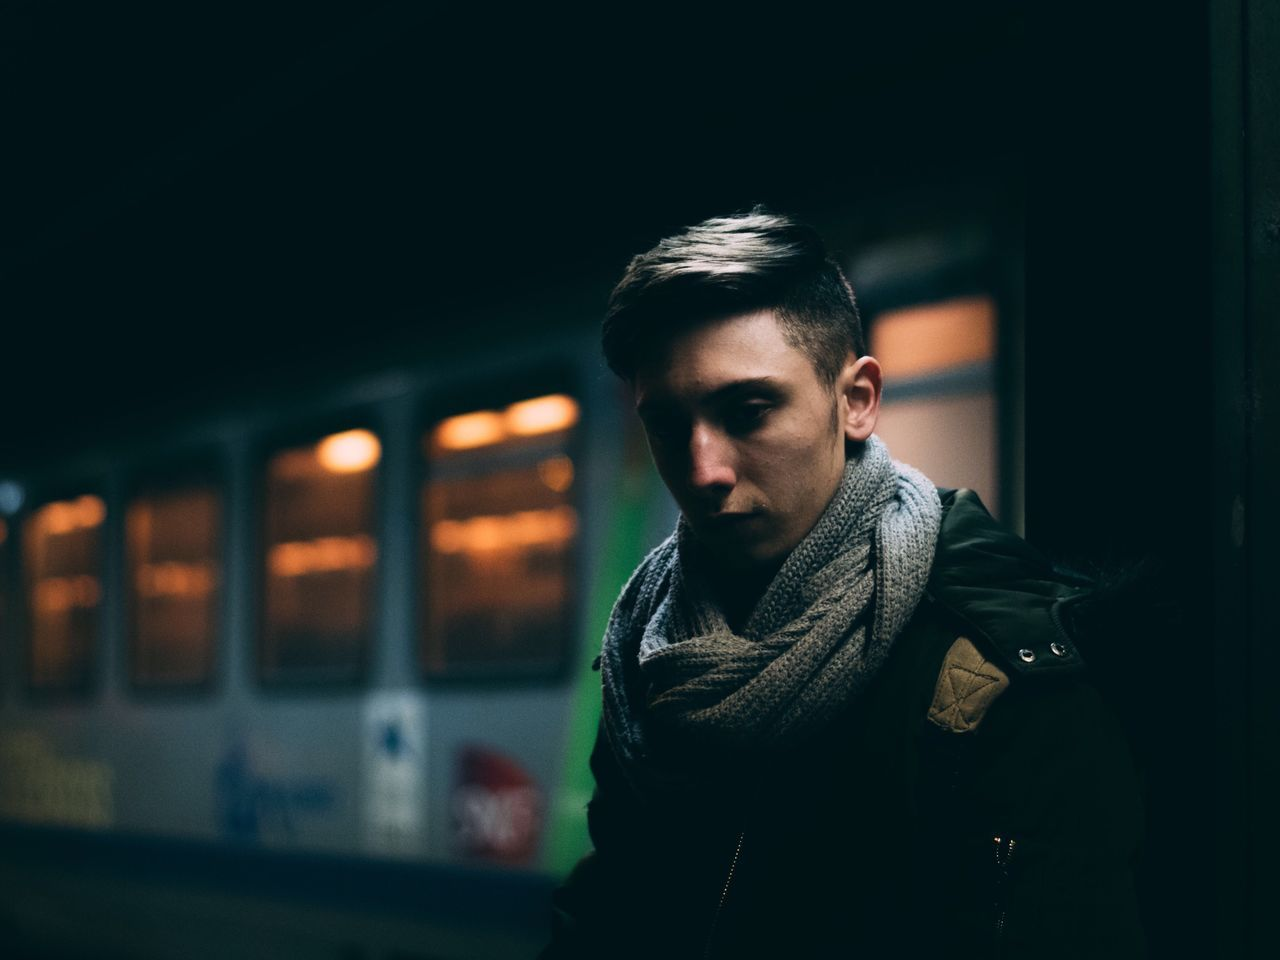 Only Men Handsome One Man Only One Person Casual Clothing Fashion Portrait Lifestyles One Young Man Only Hipster - Person Young Adult Adults Only Beard Night Confidence  Men Illuminated Standing Warm Clothing People Train Station Night Lights City Urban